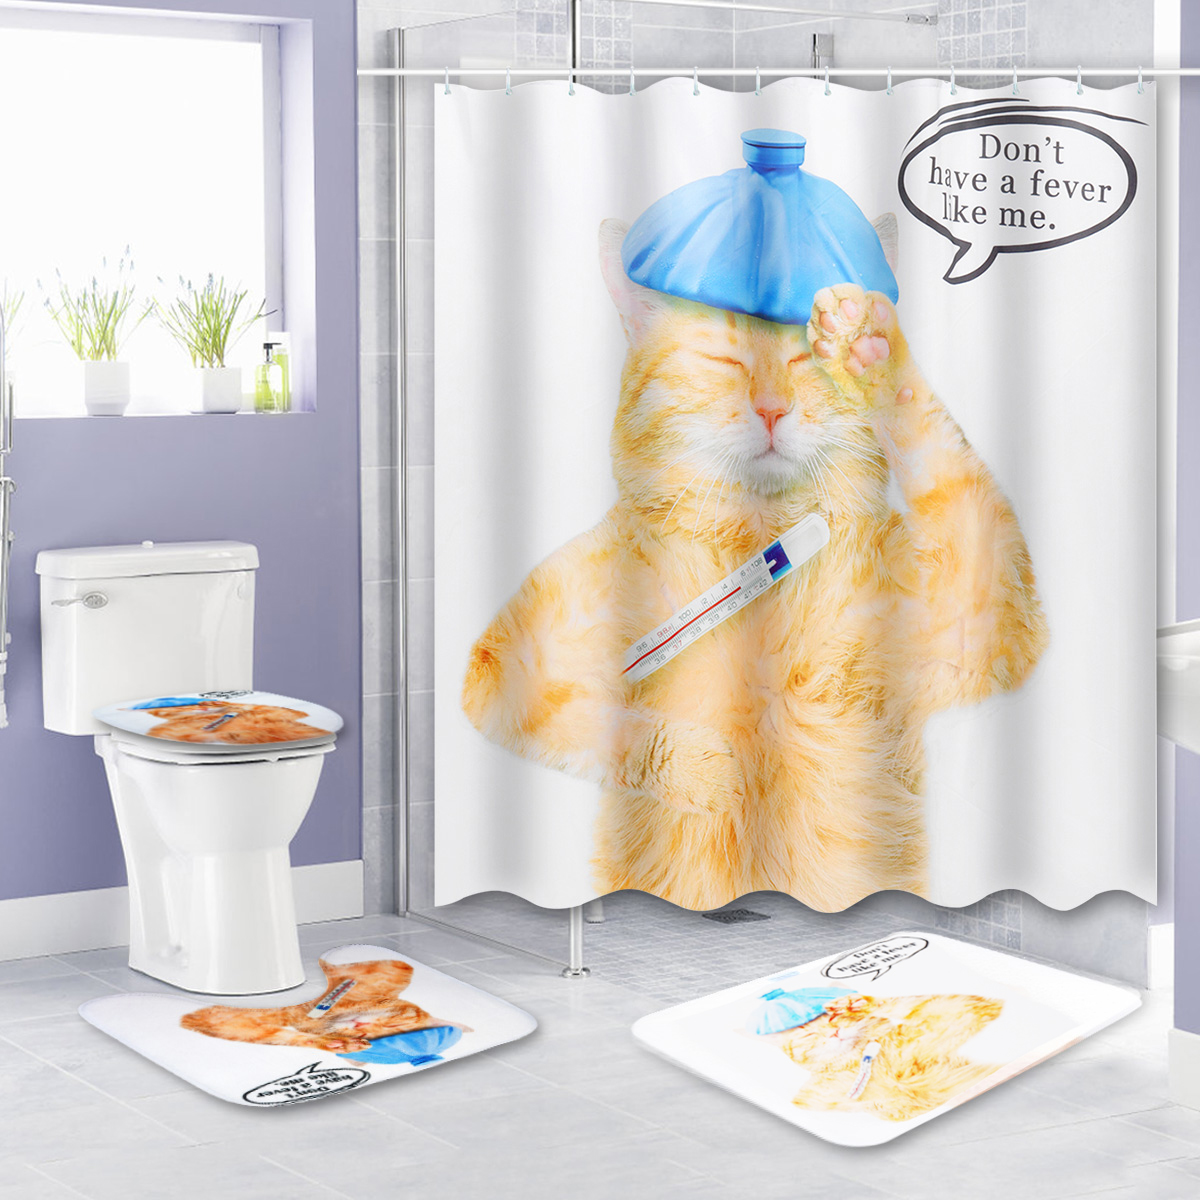 150 180x180cm Cat Bathroom Waterproof Shower Curtain With 12 White Plastic C Shaped Hooks